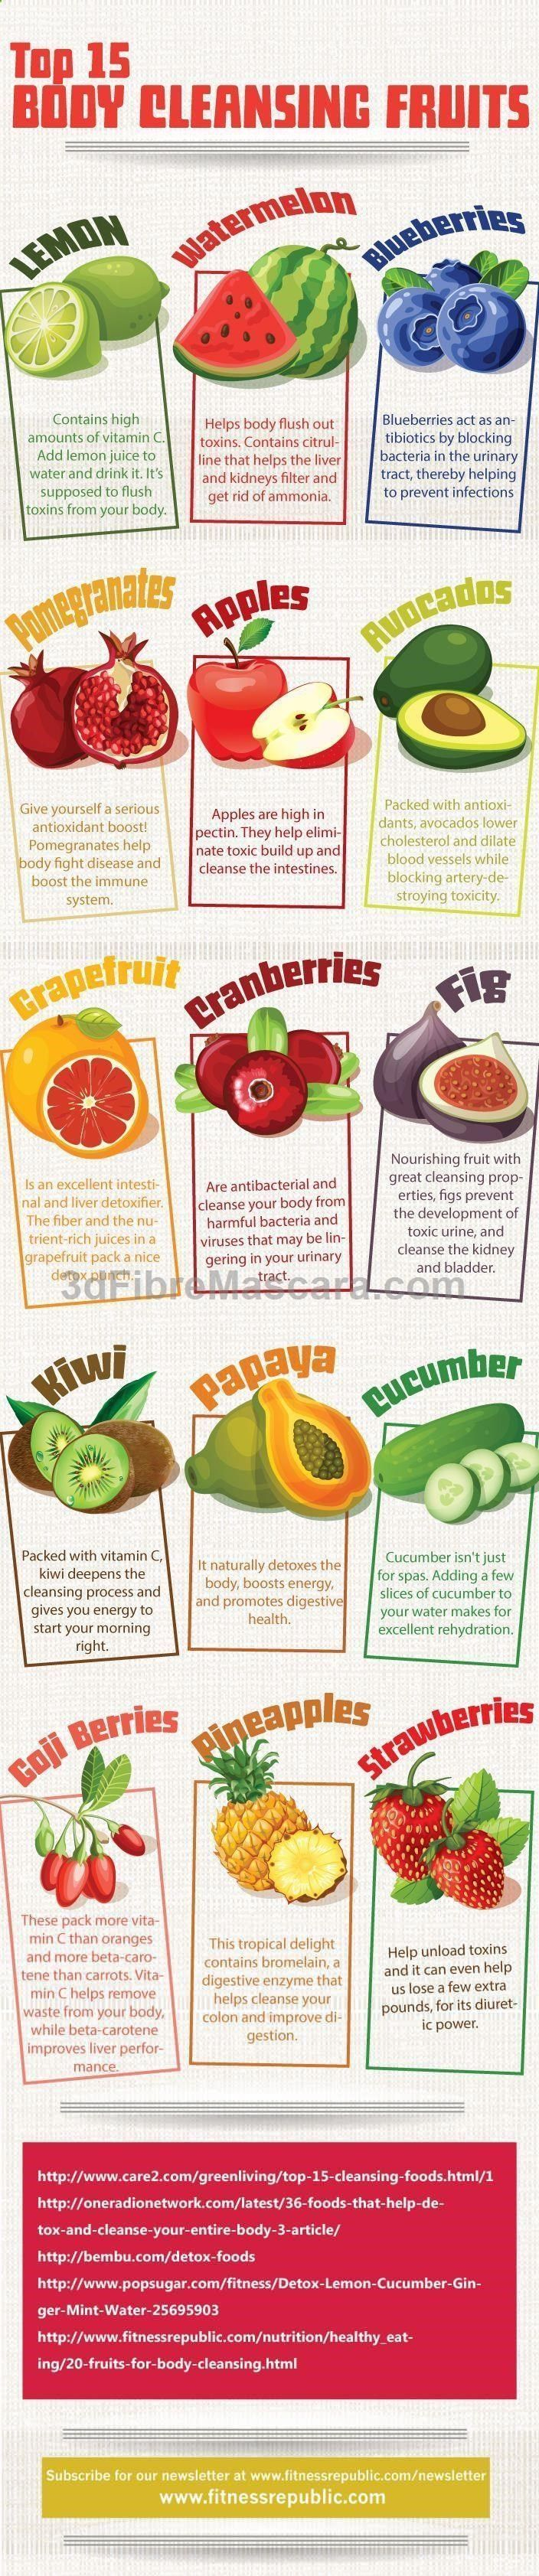 See more here ► www.youtube.com/... Tags: simple weight loss tips, tips for teens to lose weight, easy tip to lose weight - 15 Body Cleansing Fruits : Fruit fasts or cleanses are said to allow your digestive system to detoxify, get rid of toxins and wastes, and help you to naturally restore harmony and balance to your entire body. In this infographic found on Pinterest, we are introduced to what are said to be the Top 15 Body […] #exercise #diet #workout #fitness #health #diet #dieting..